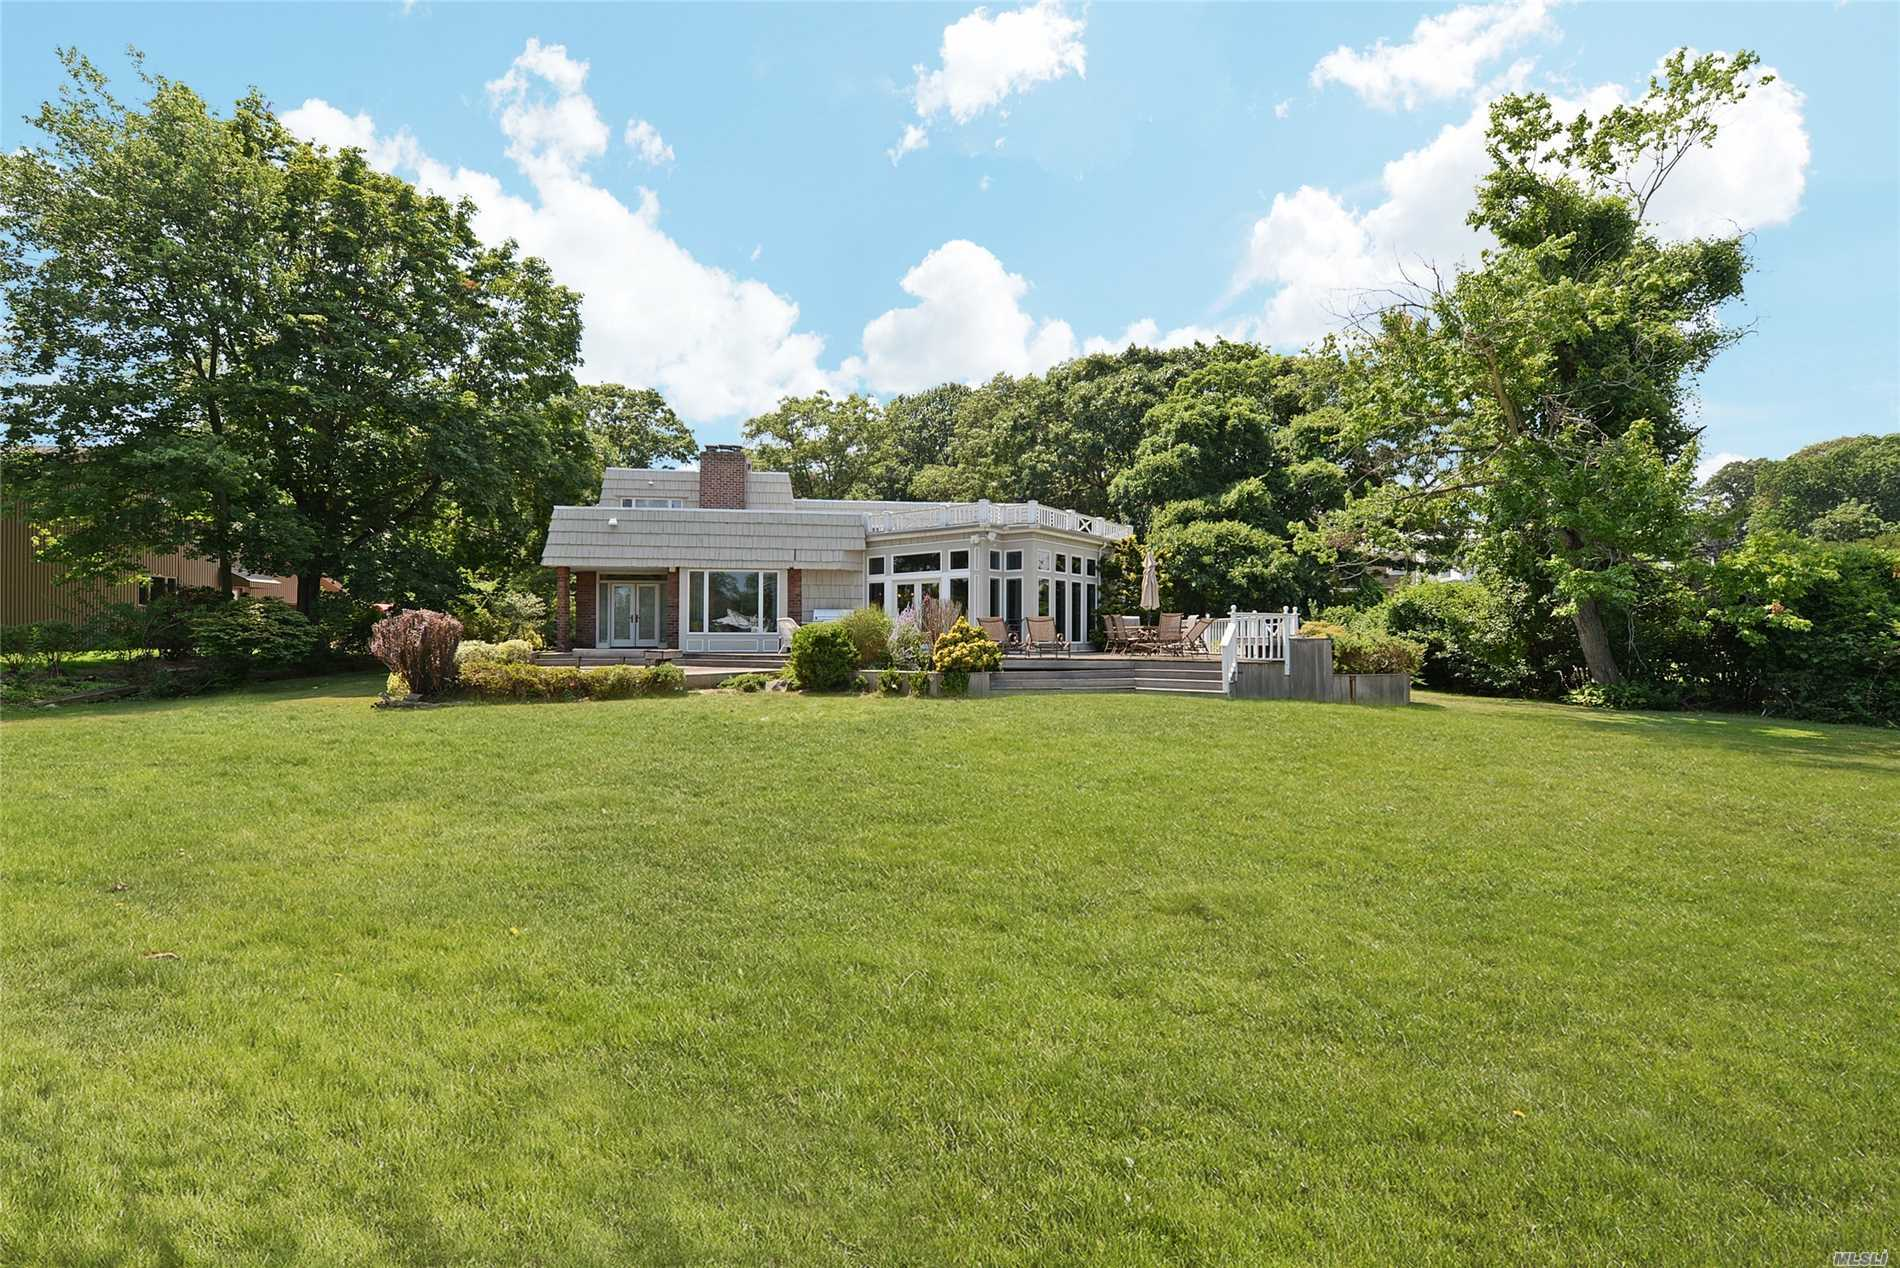 House for sale Hewlett Bay Park, NY 90 Anchorage Rd